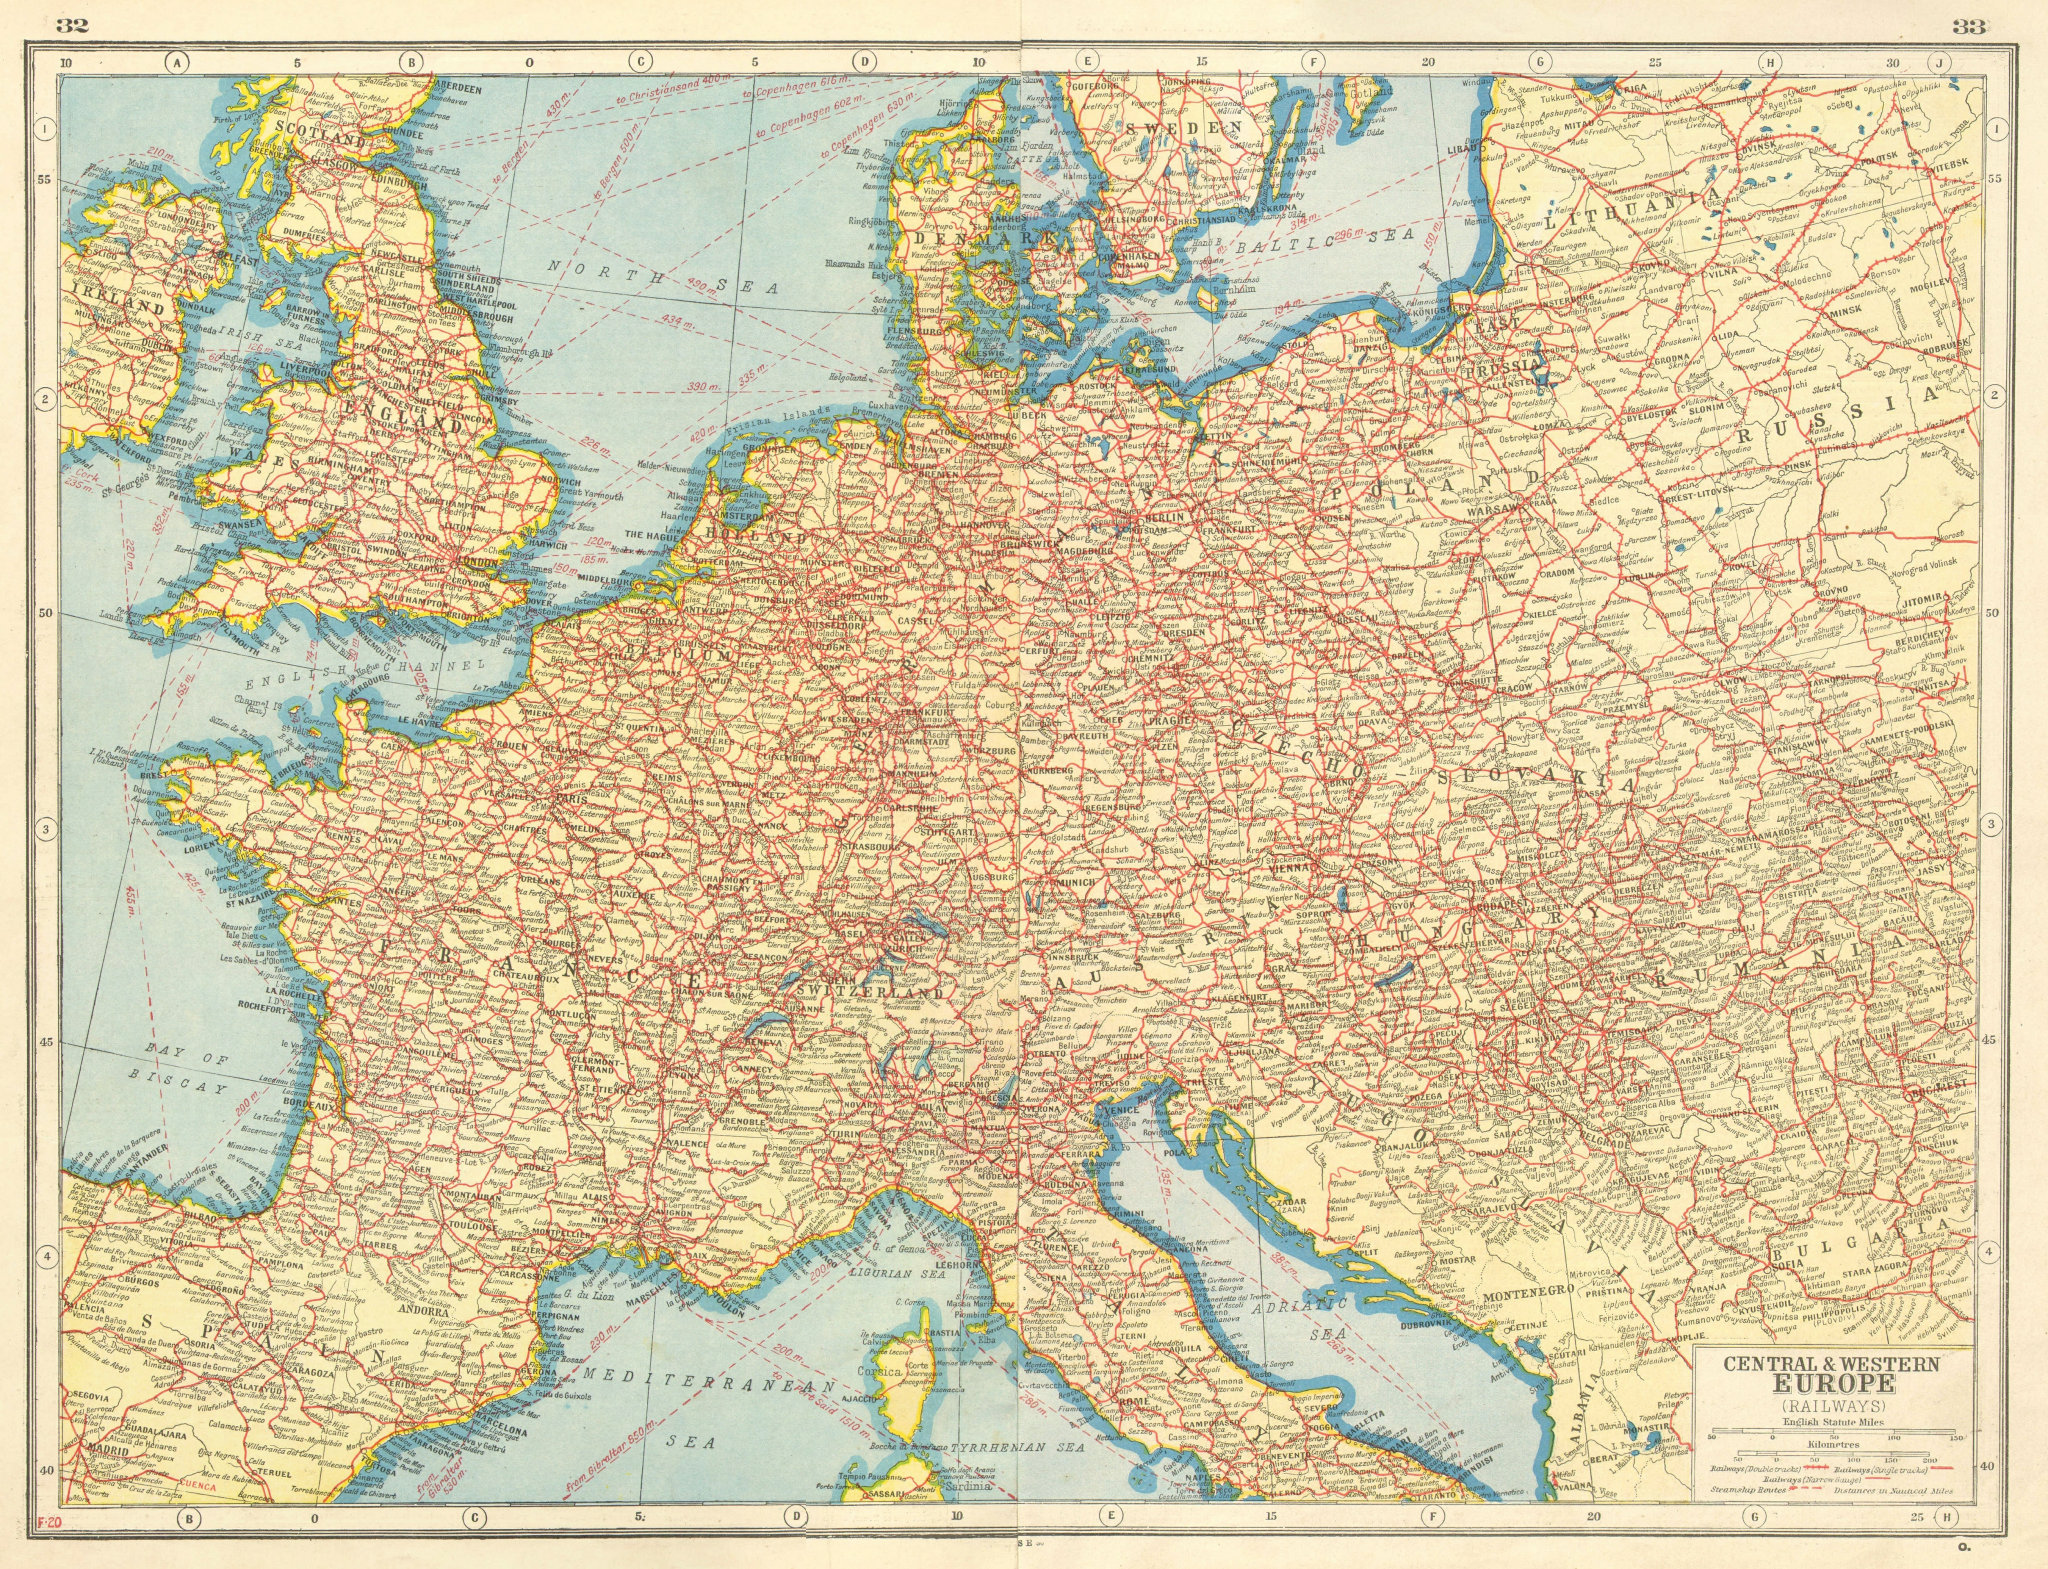 Associate Product EUROPE RAILWAYS. double & single track. Narrow gauge. Steamship routes 1920 map